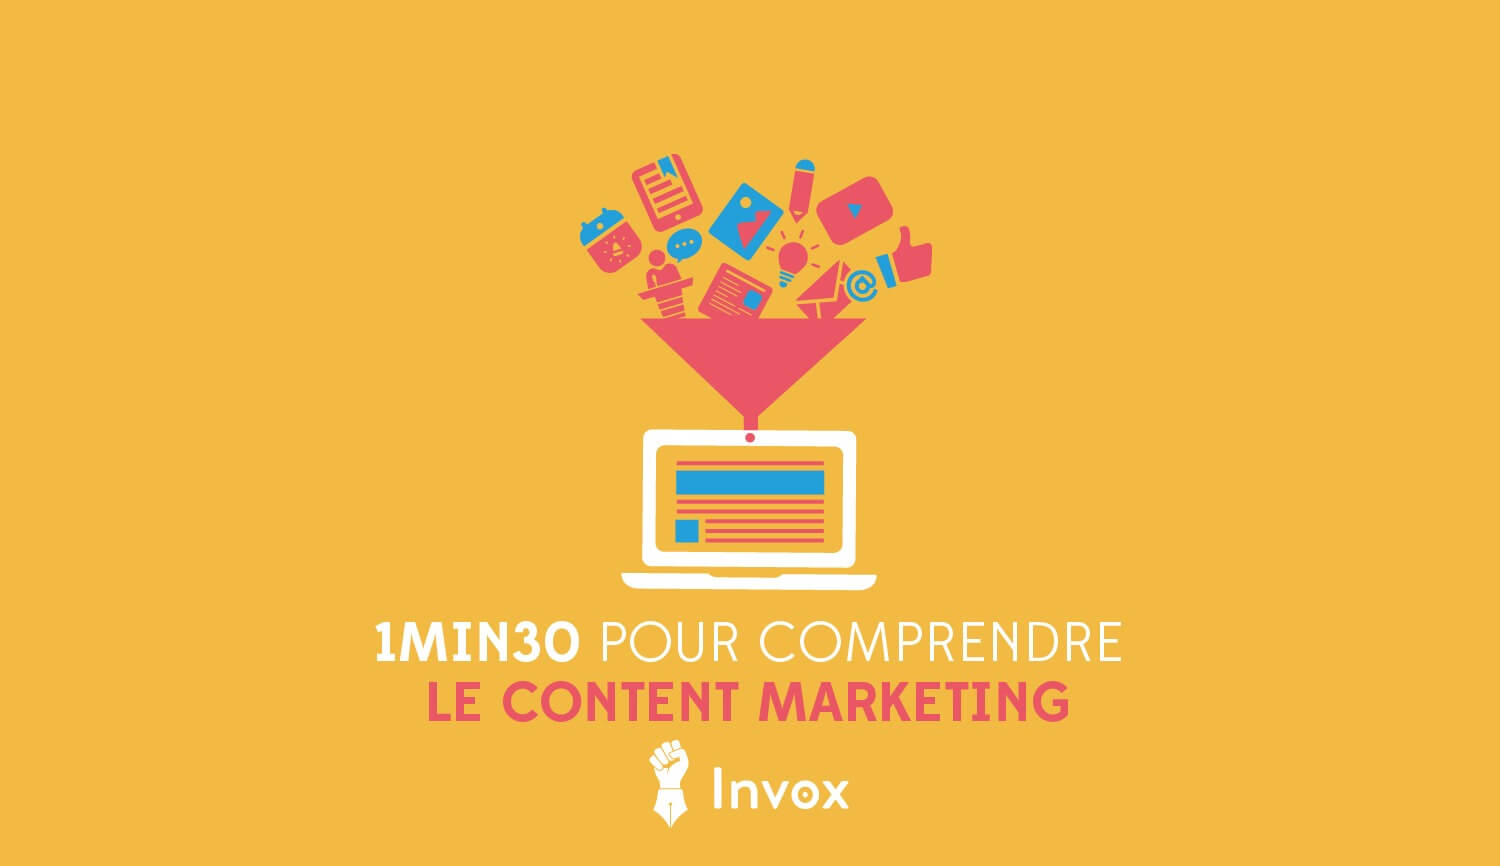 1min30-pour-comprendre-le-content-marketing-invox-blog